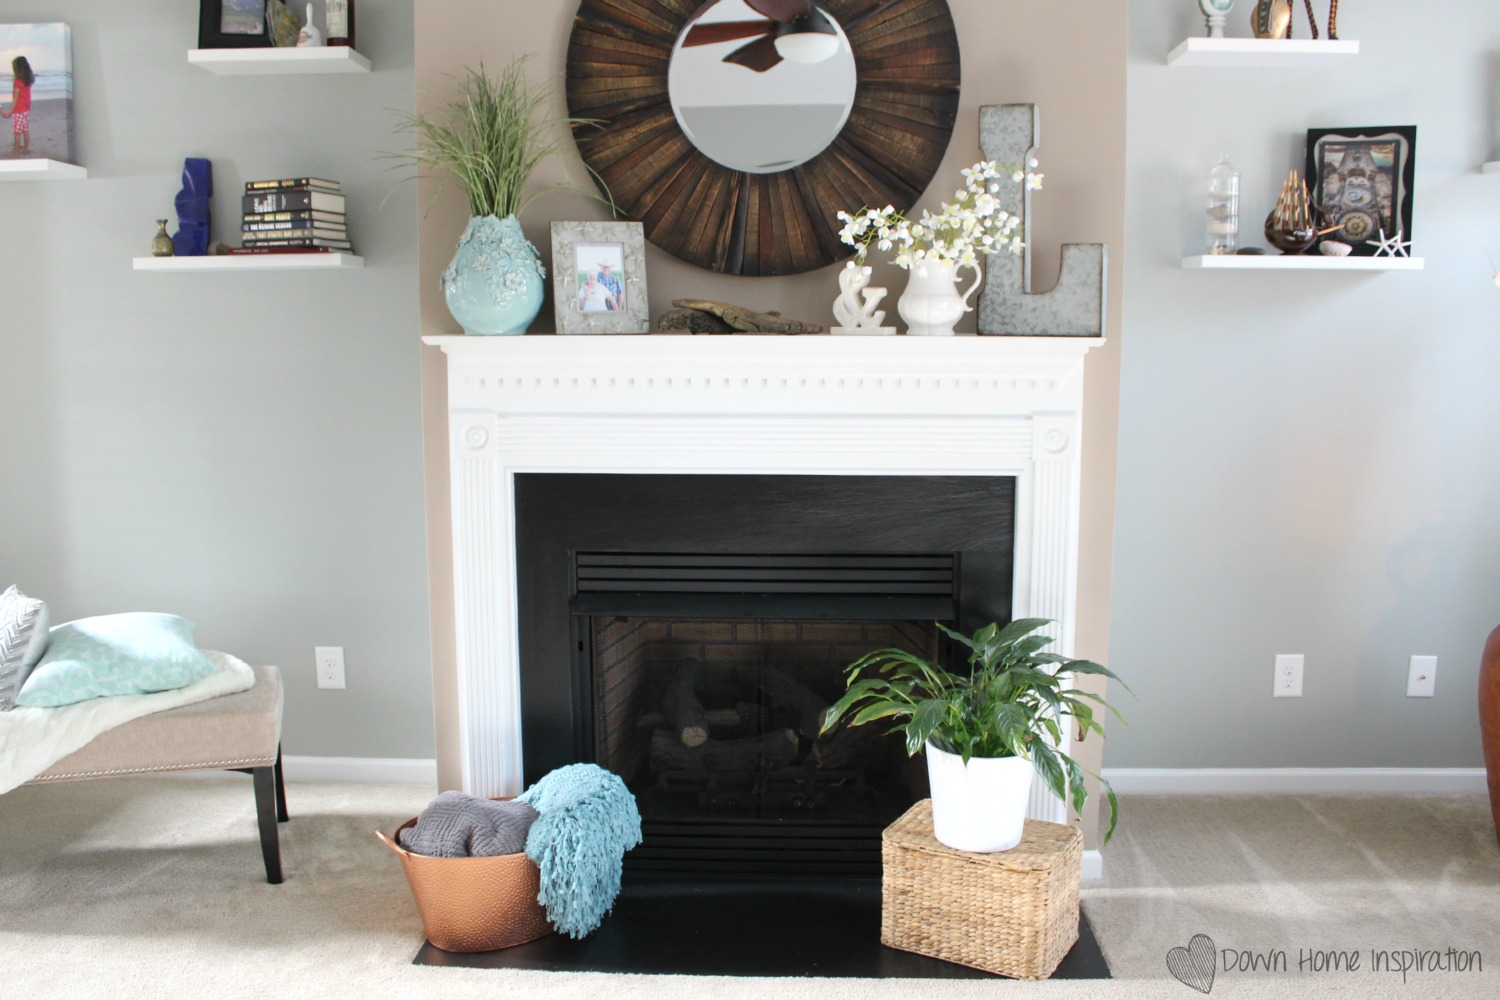 Mantle Without Fireplace No Mantel Fireplace Hubhouzcom Mantle Without Fireplace Dactus